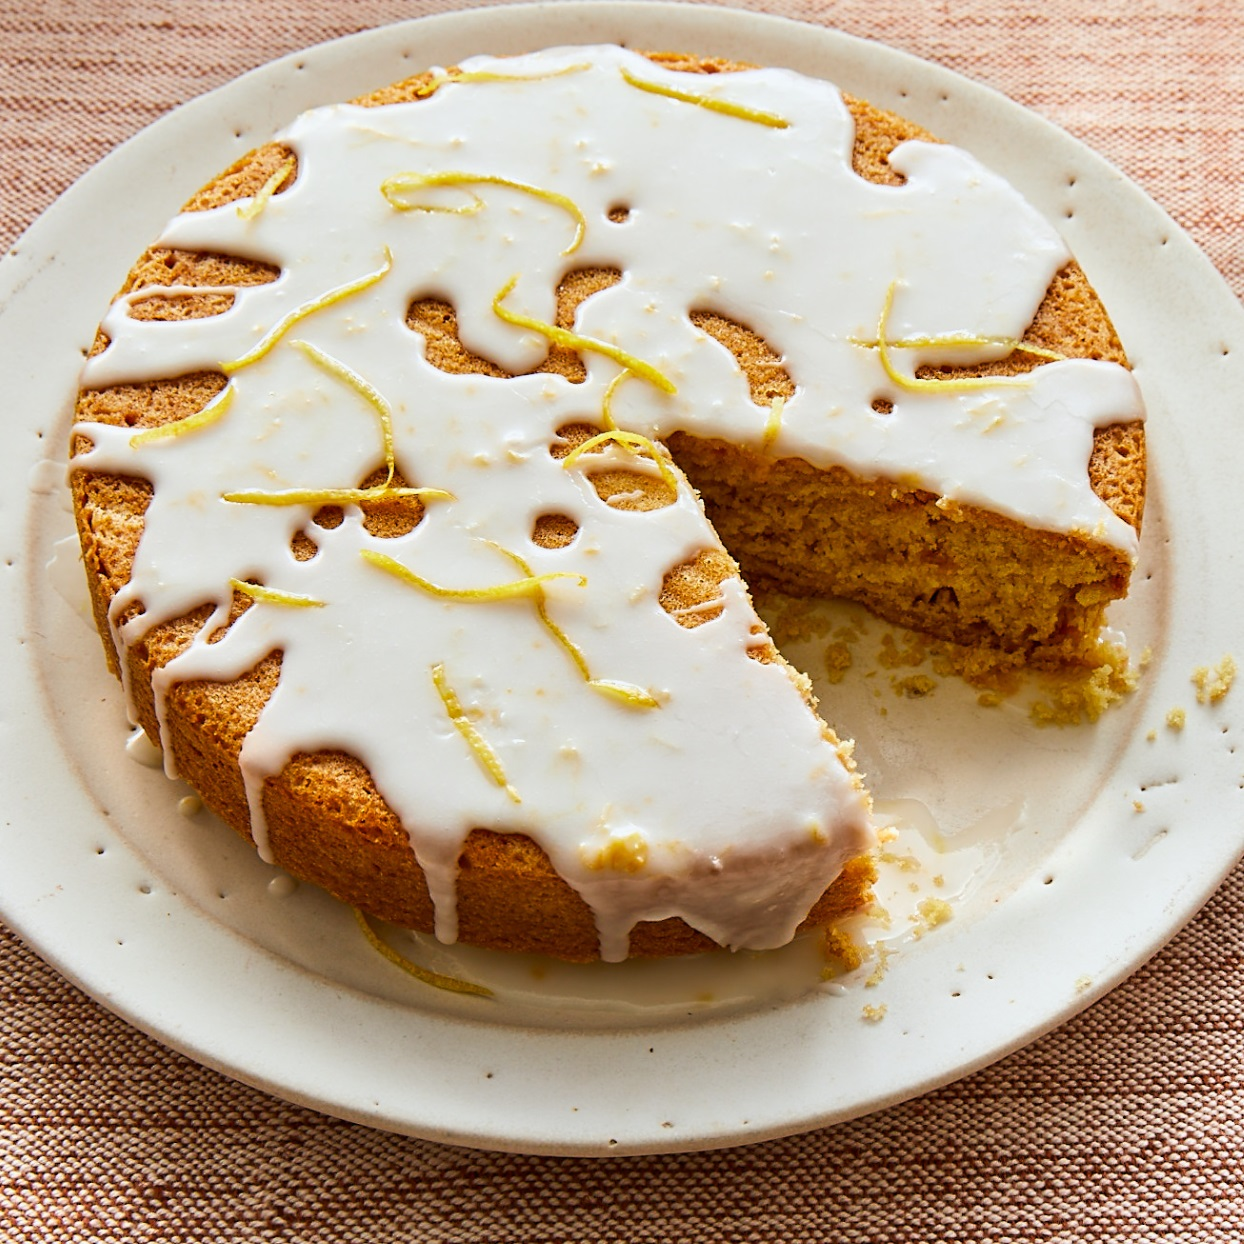 You don't have to be vegan to enjoy this vegan lemon cake! It's moist, delicious and plenty lemony thanks to a combination of lemon juice and zest. A glaze made with lemon juice, confectioners' sugar and almond milk adds a sweet-tangy finish.